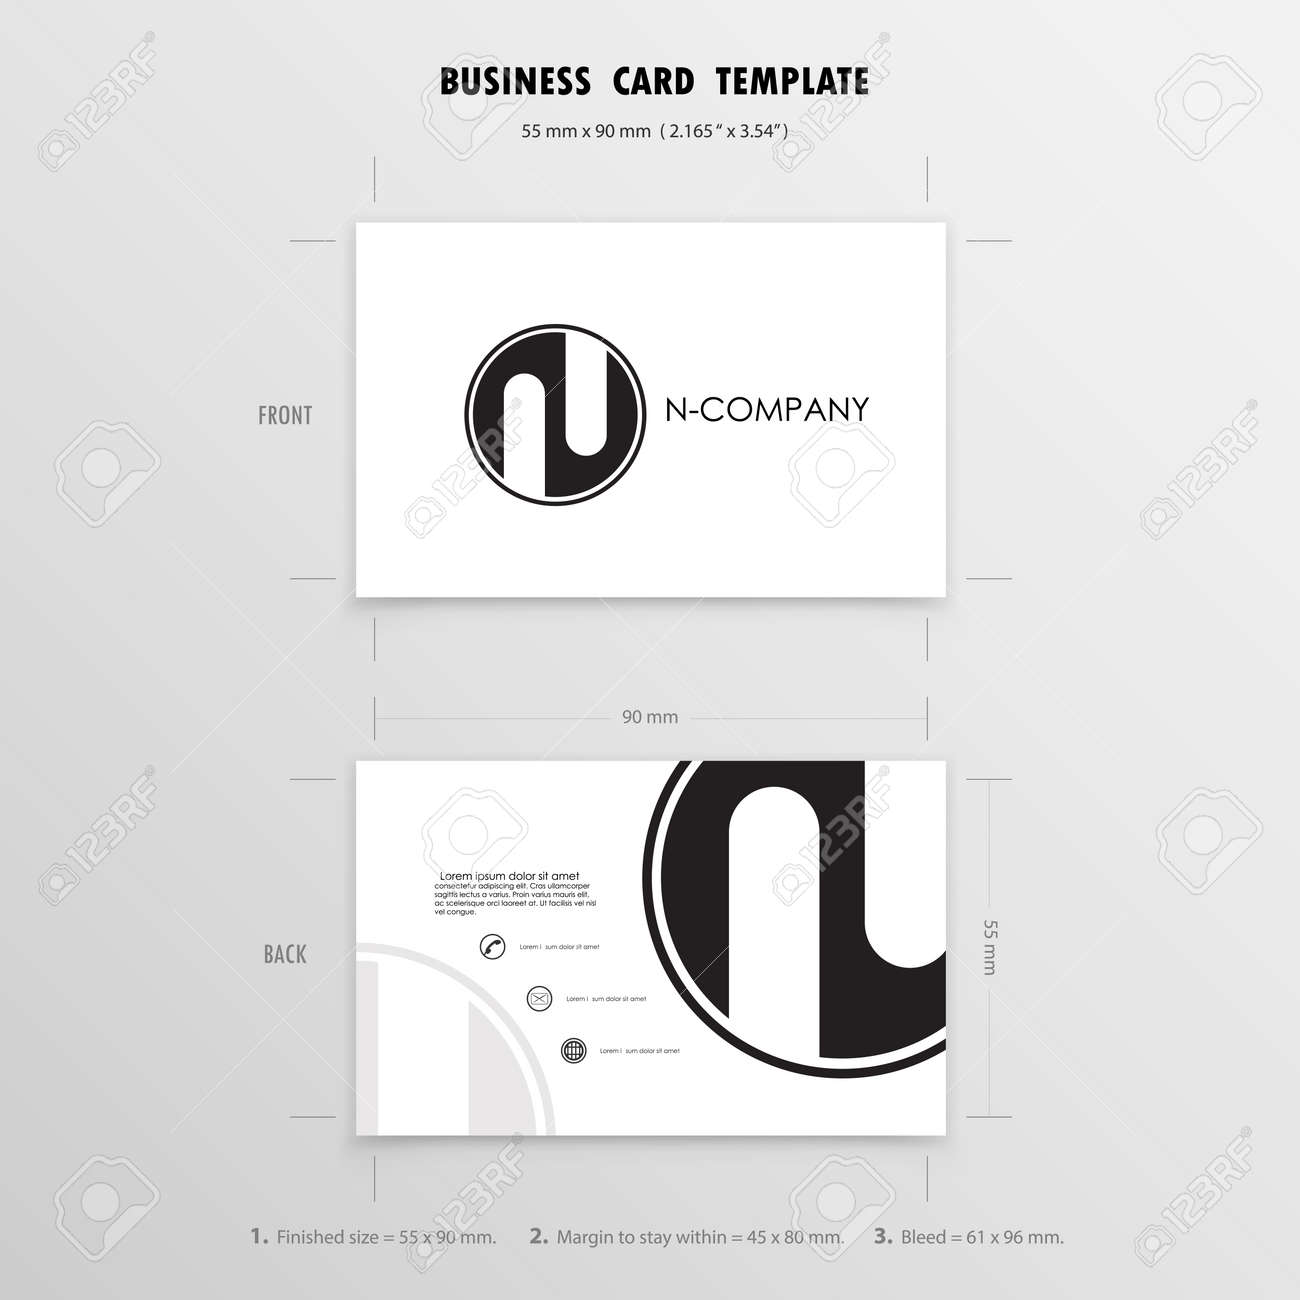 Business cards design template name cards symbol size 55 mm vector illustration business cards design template name cards symbol size 55 mm x 90 mm reheart Image collections